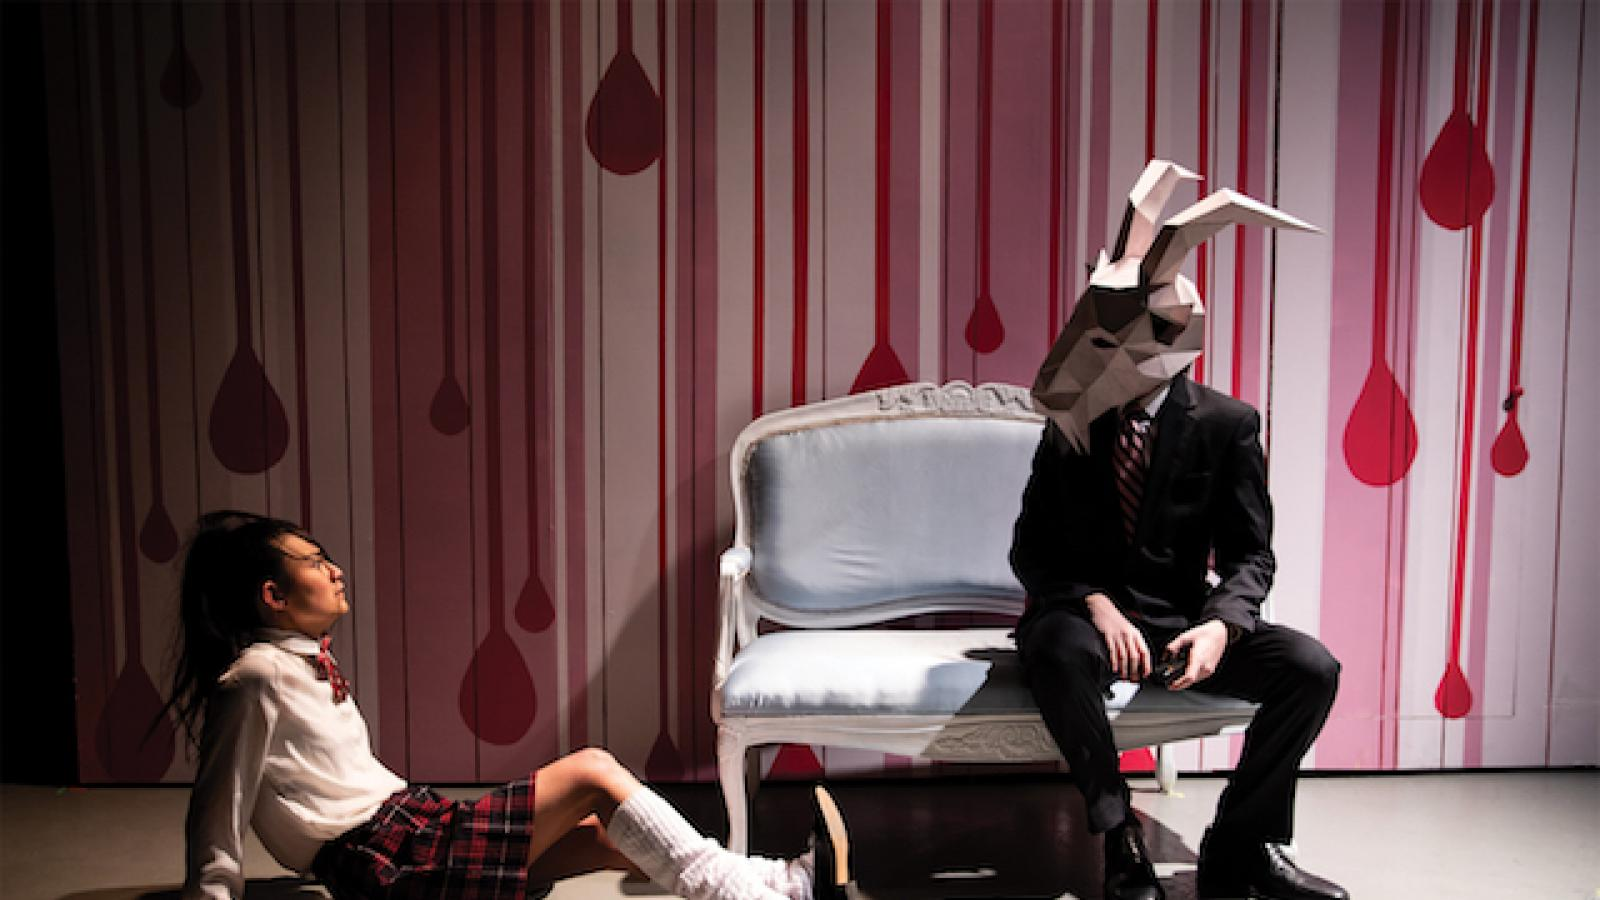 a girl in a school uniform sits on the floor looking up at a person sitting on a couch wearing an animal head